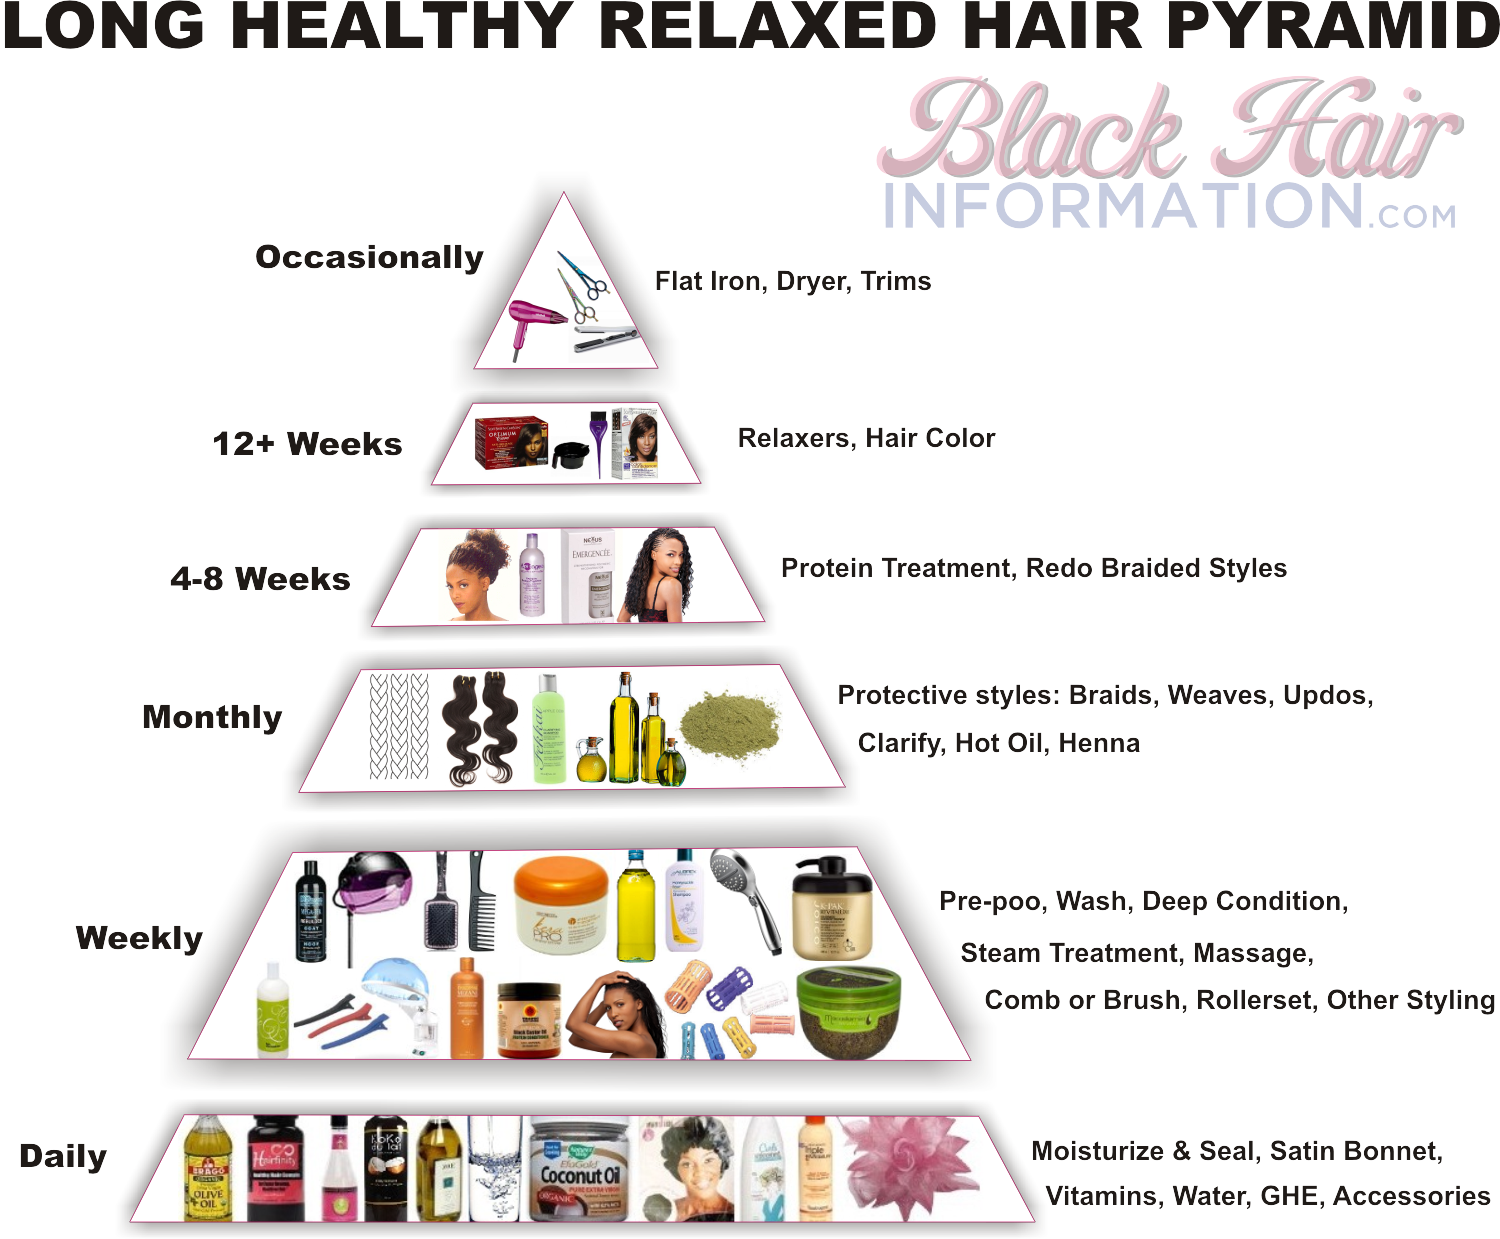 Long Healthy Relaxed Hair Pyramid A Regimen At A Glance